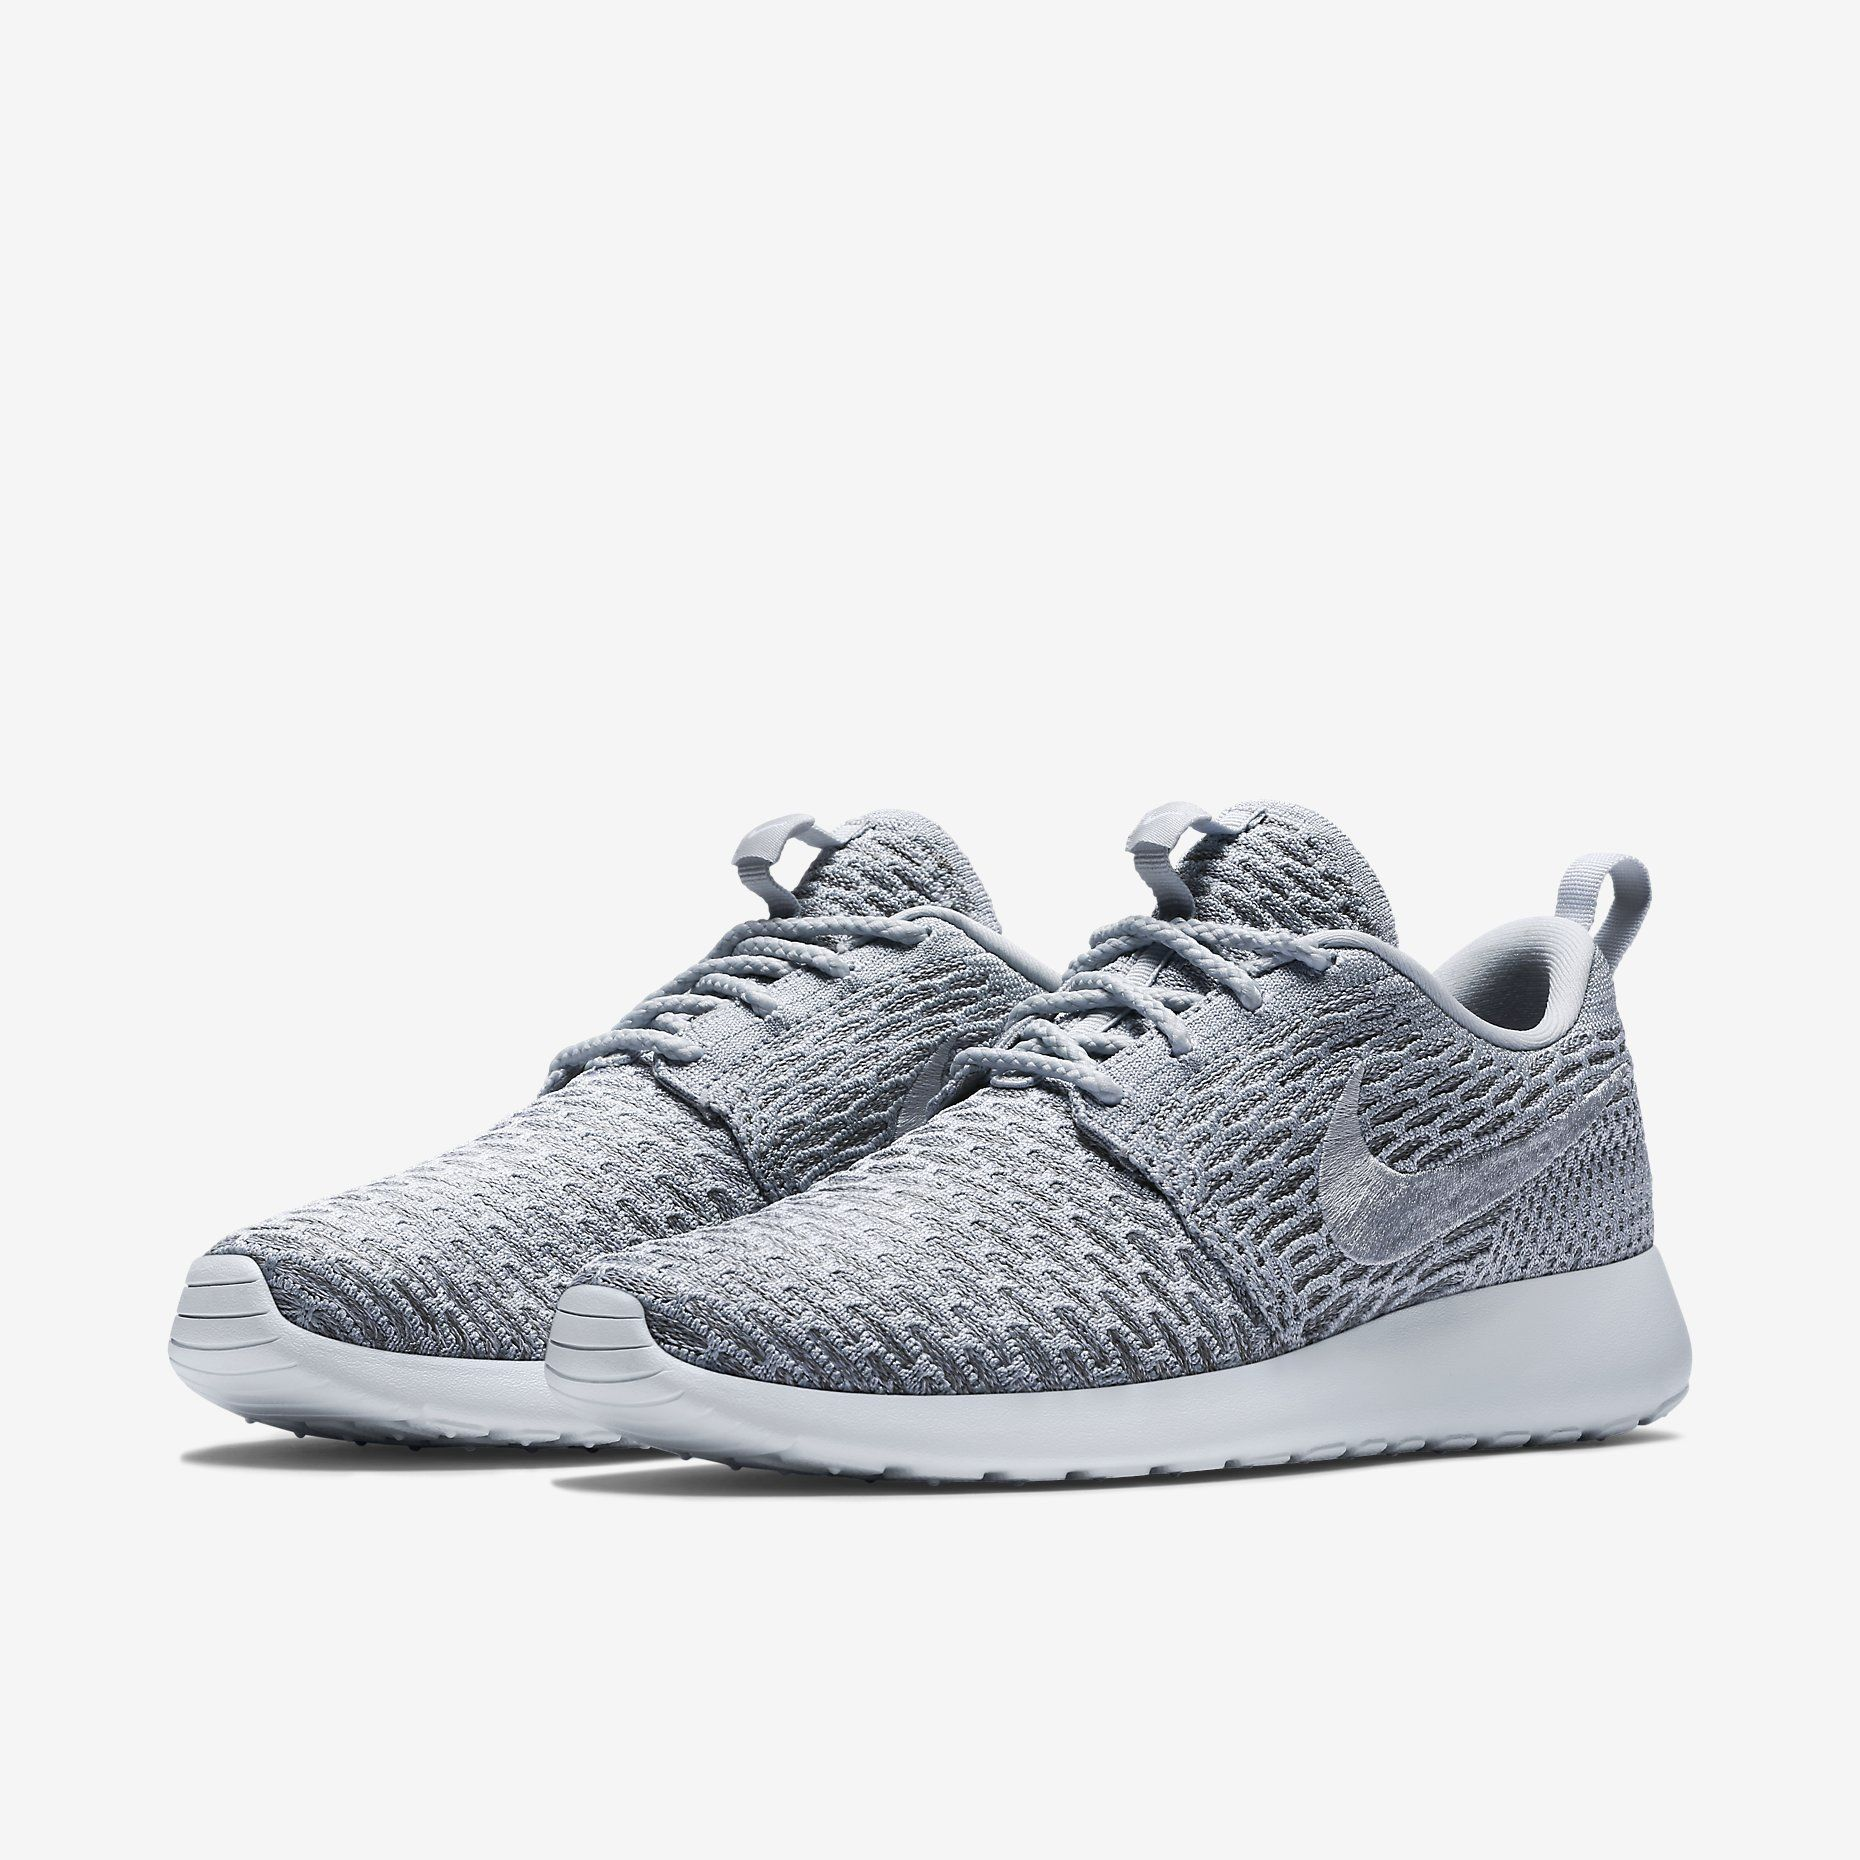 outlet store eda9f 4a935 Nike women s running shoes are designed with innovative features and  technologies to help you run your best, whatever your goals and skill level.